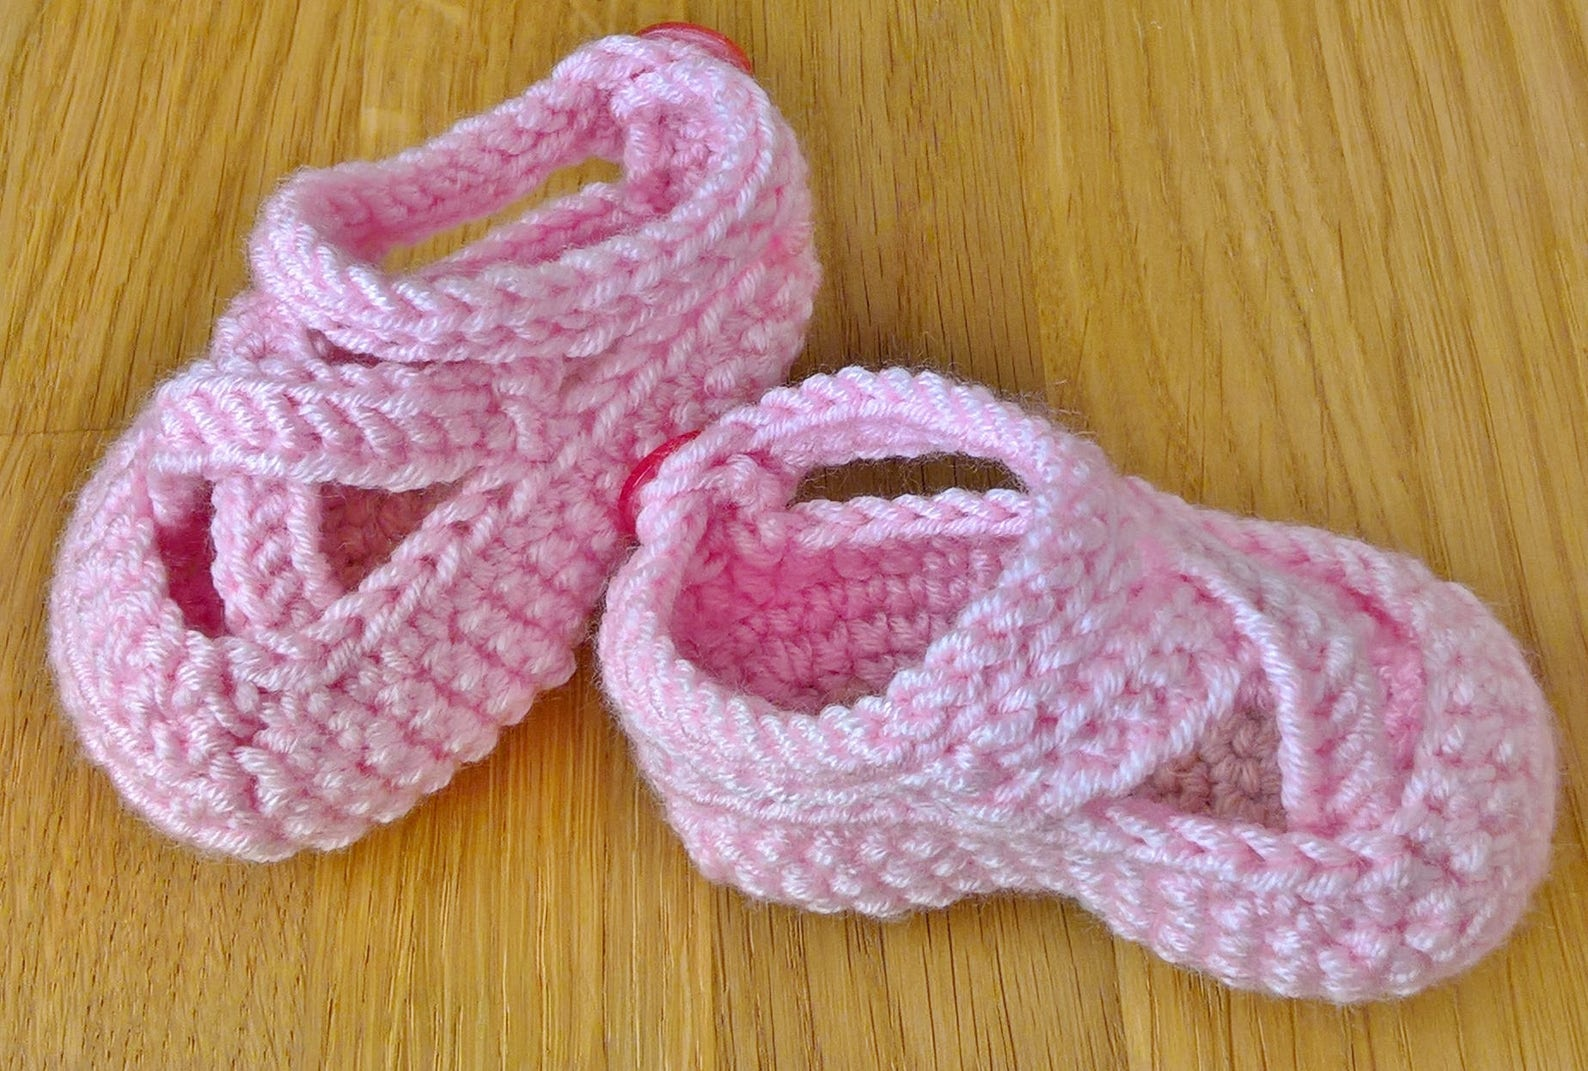 baby ballet wrap and shoes/ baby girl birthday gift/ ballet cardigan and shoes/ baby gift set/ baby knitwear gift/ crochet balle